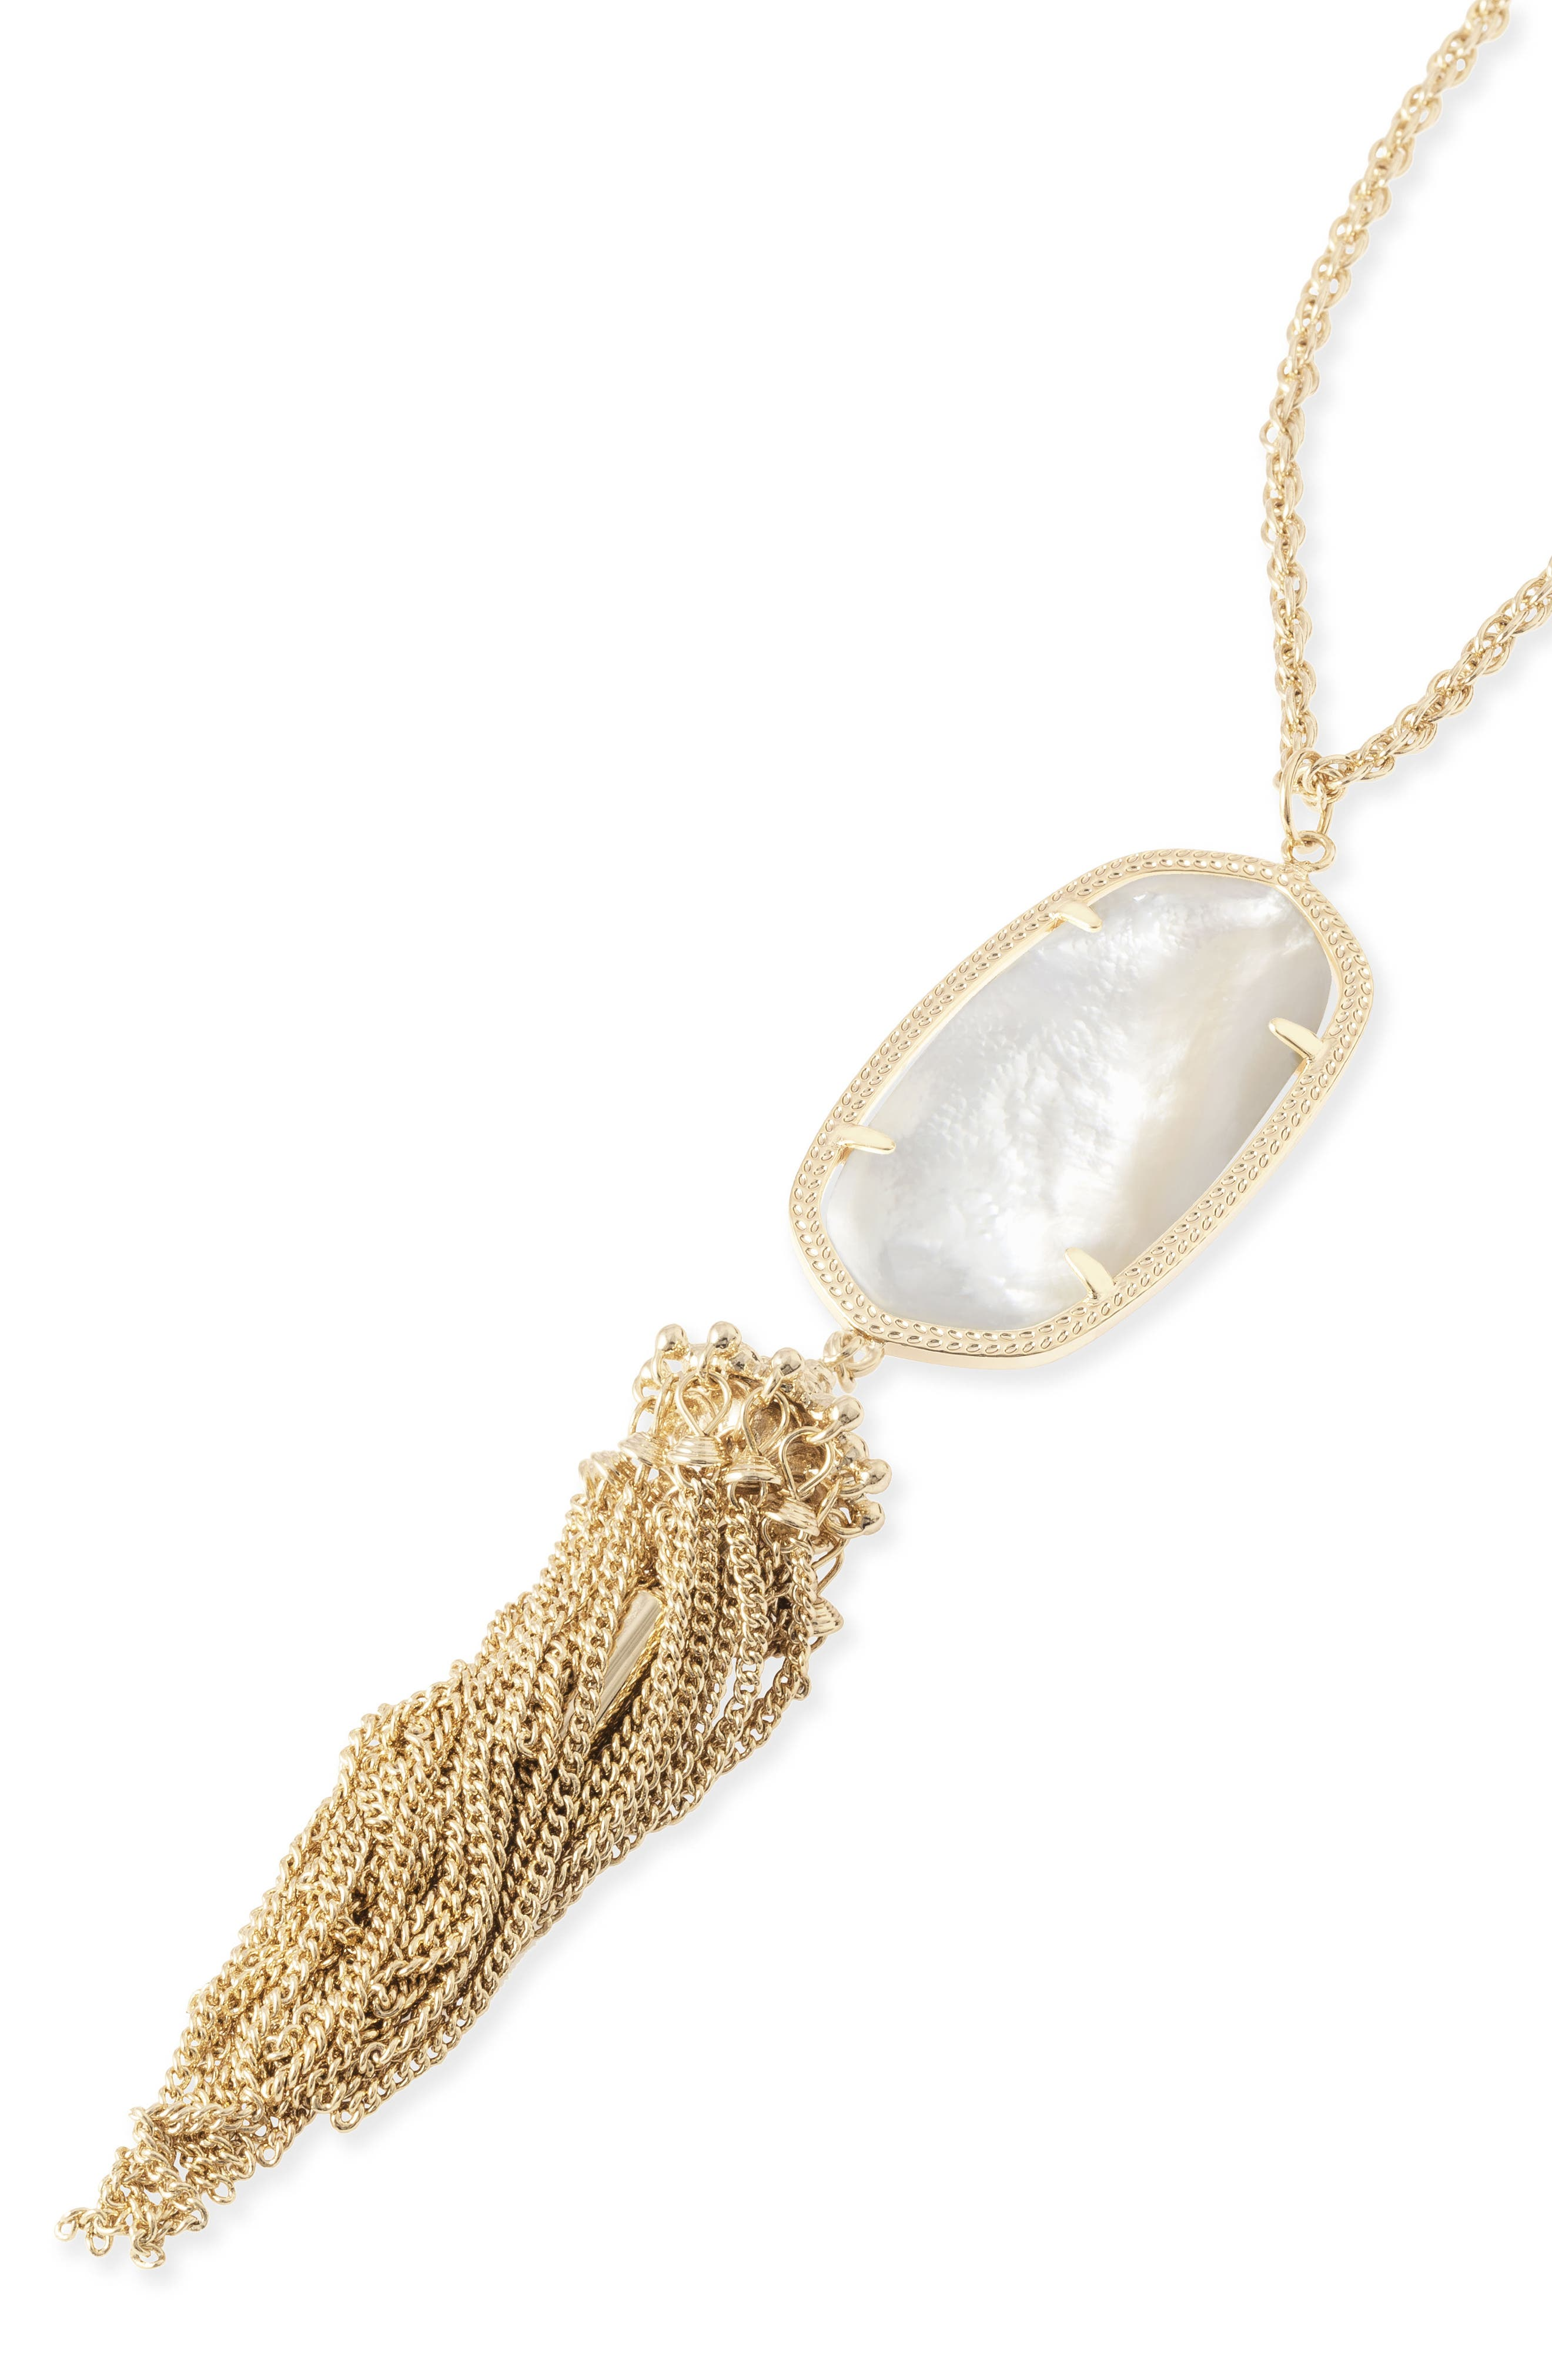 Rayne Stone Tassel Pendant Necklace,                             Alternate thumbnail 4, color,                             White Mother Of Pearl/ Gold